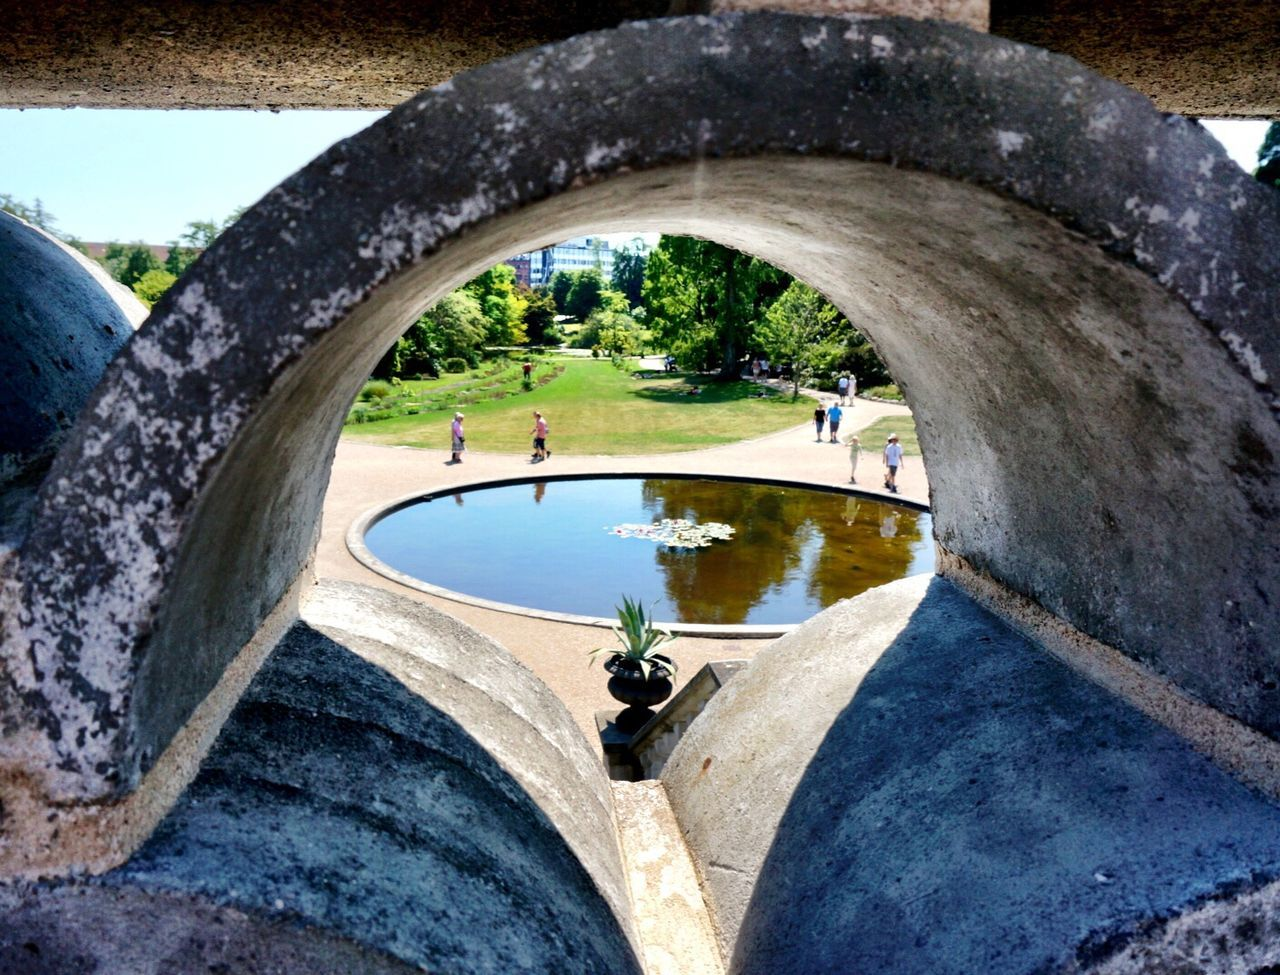 day, water, leisure activity, real people, sport, lifestyles, tree, two people, outdoors, architecture, men, fish-eye lens, nature, skateboard park, sky, people